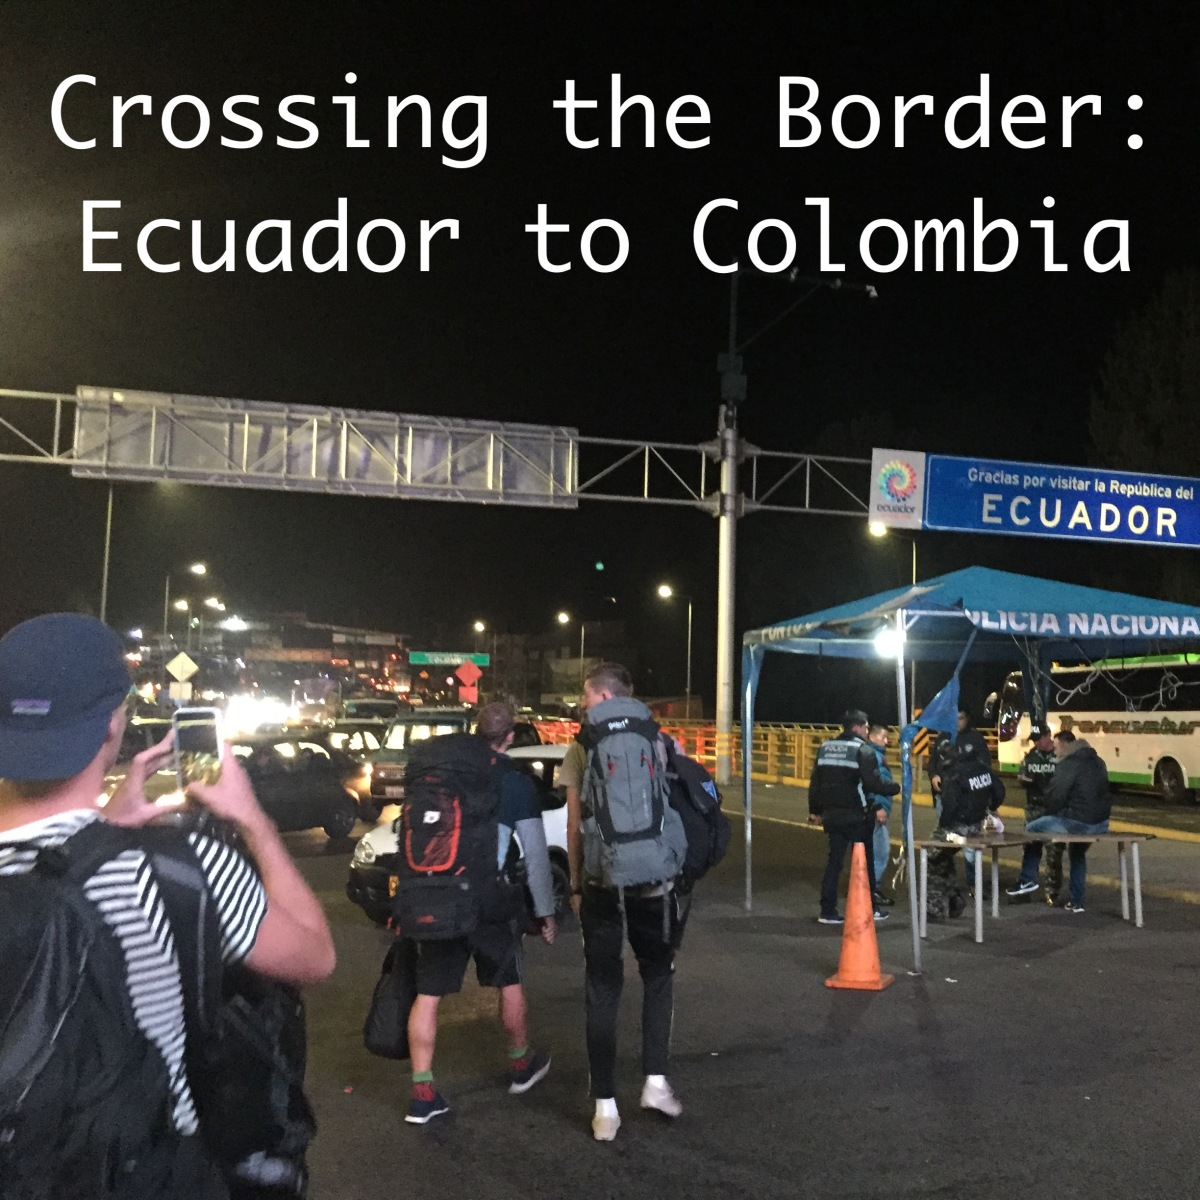 Crossing the Border from Ecuador to Colombia